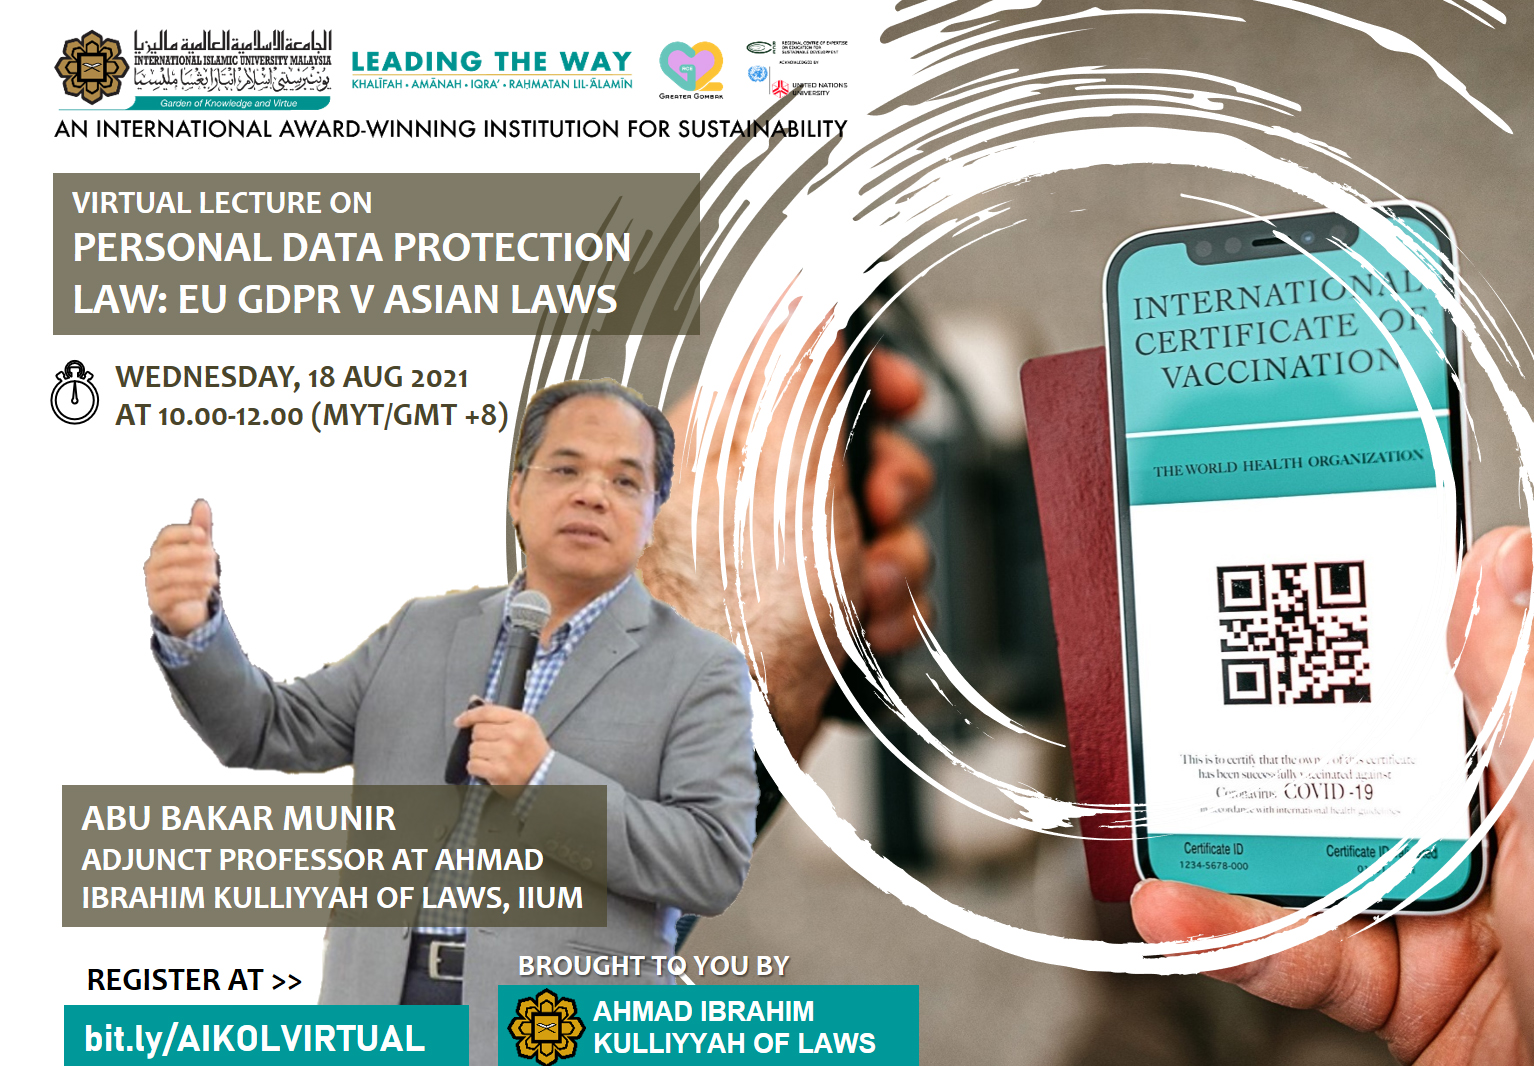 VIRTUAL LECTURE ON PERSONAL DATA PROTECTION LAW: EU GDPR V ASIAN LAWS